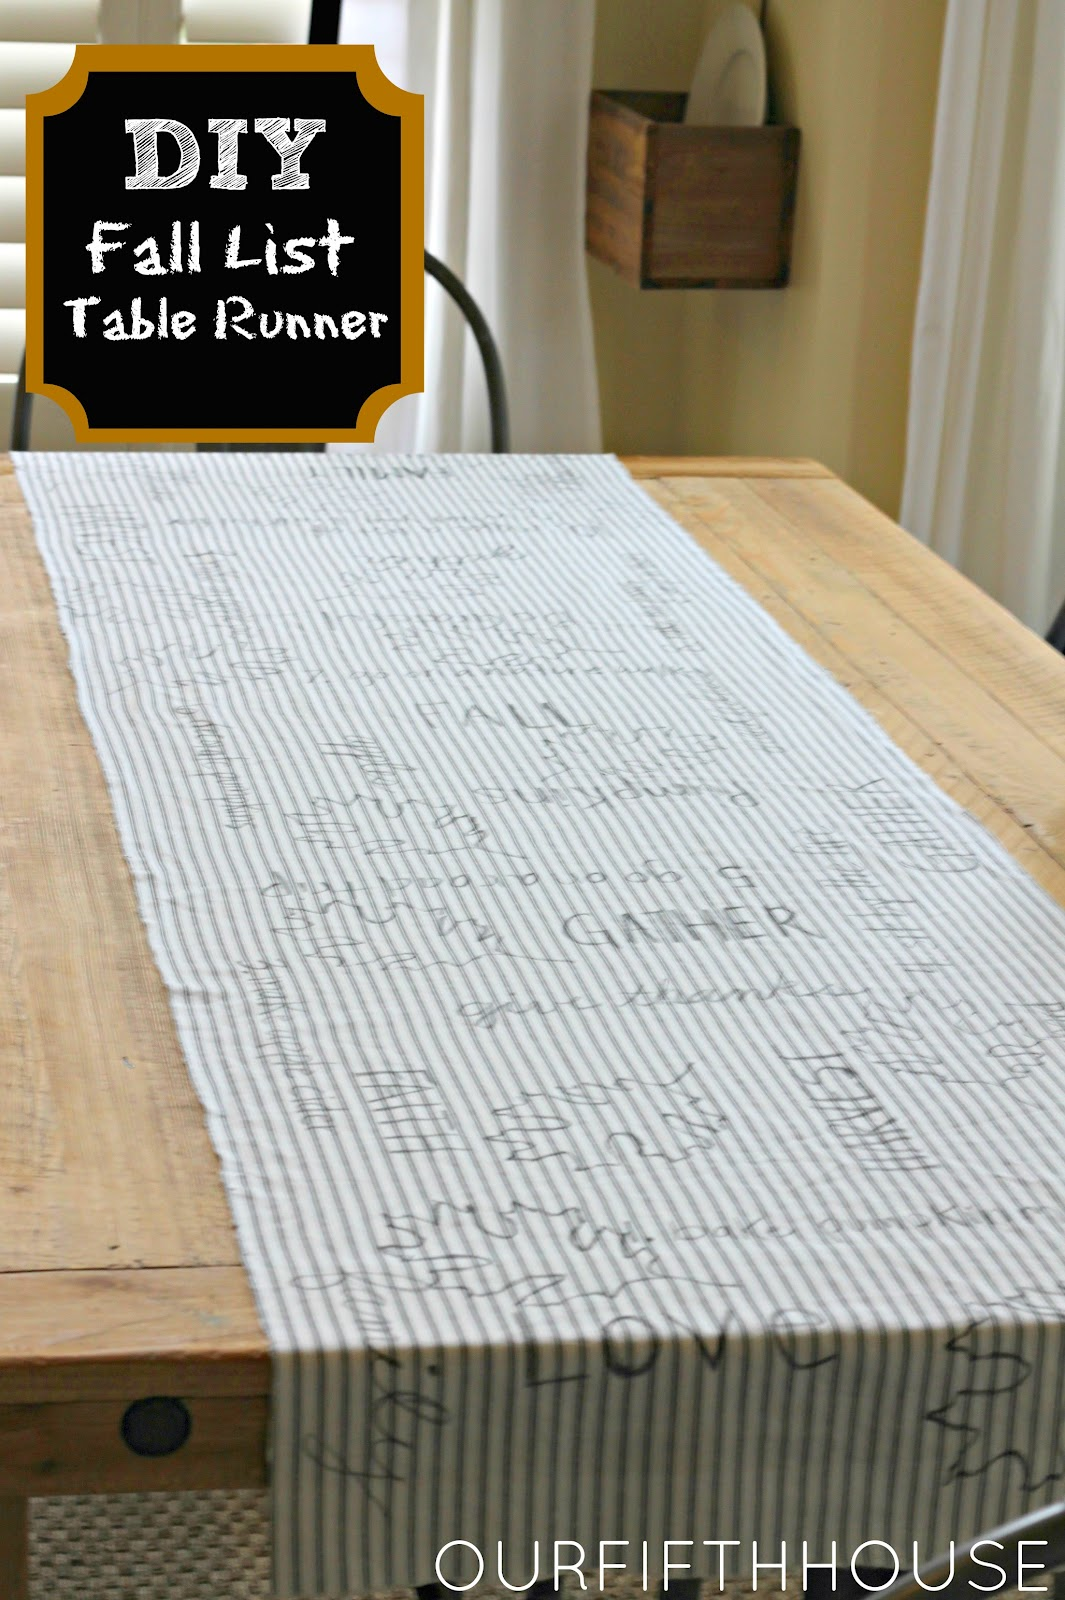 Diy Fall List Table Runner Our Fifth House